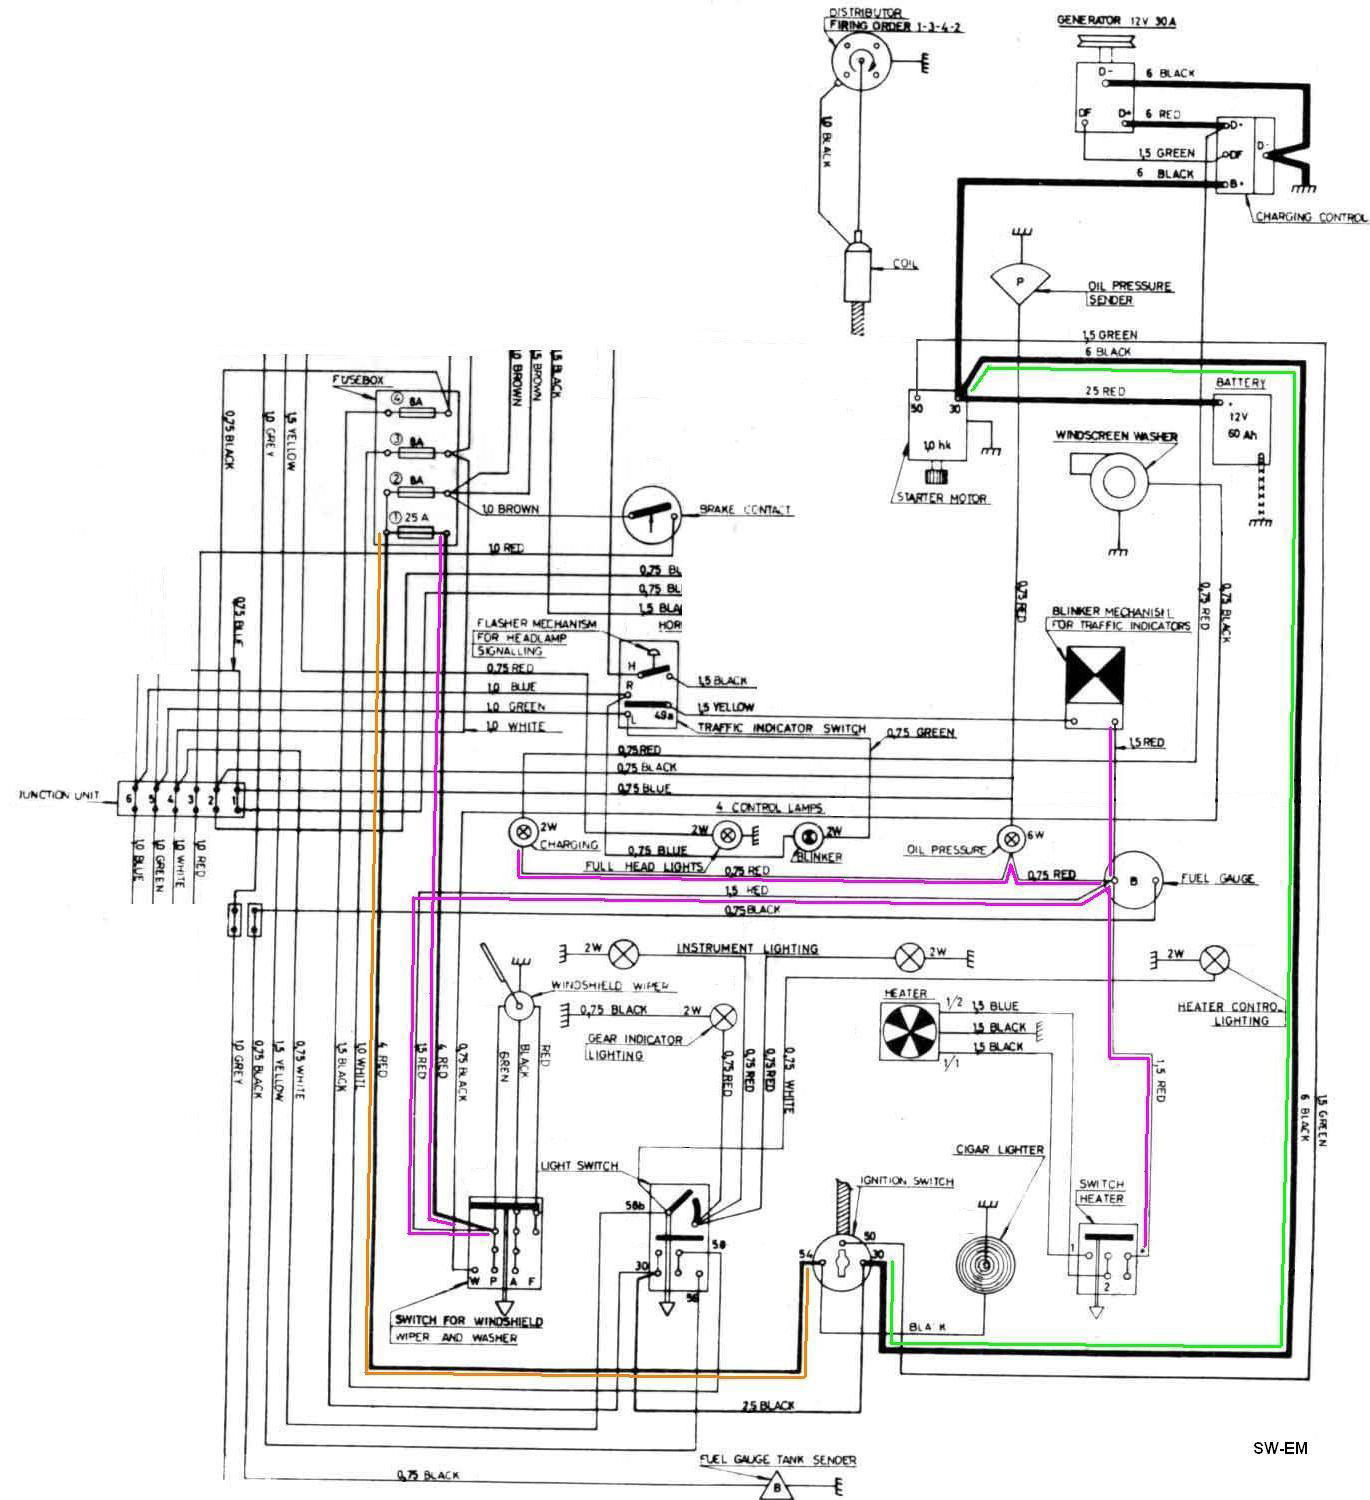 IGN SW wiring diag 122 markup 1800 ignition wiring swedish vs british design volvo penta starter motor wiring diagram at reclaimingppi.co